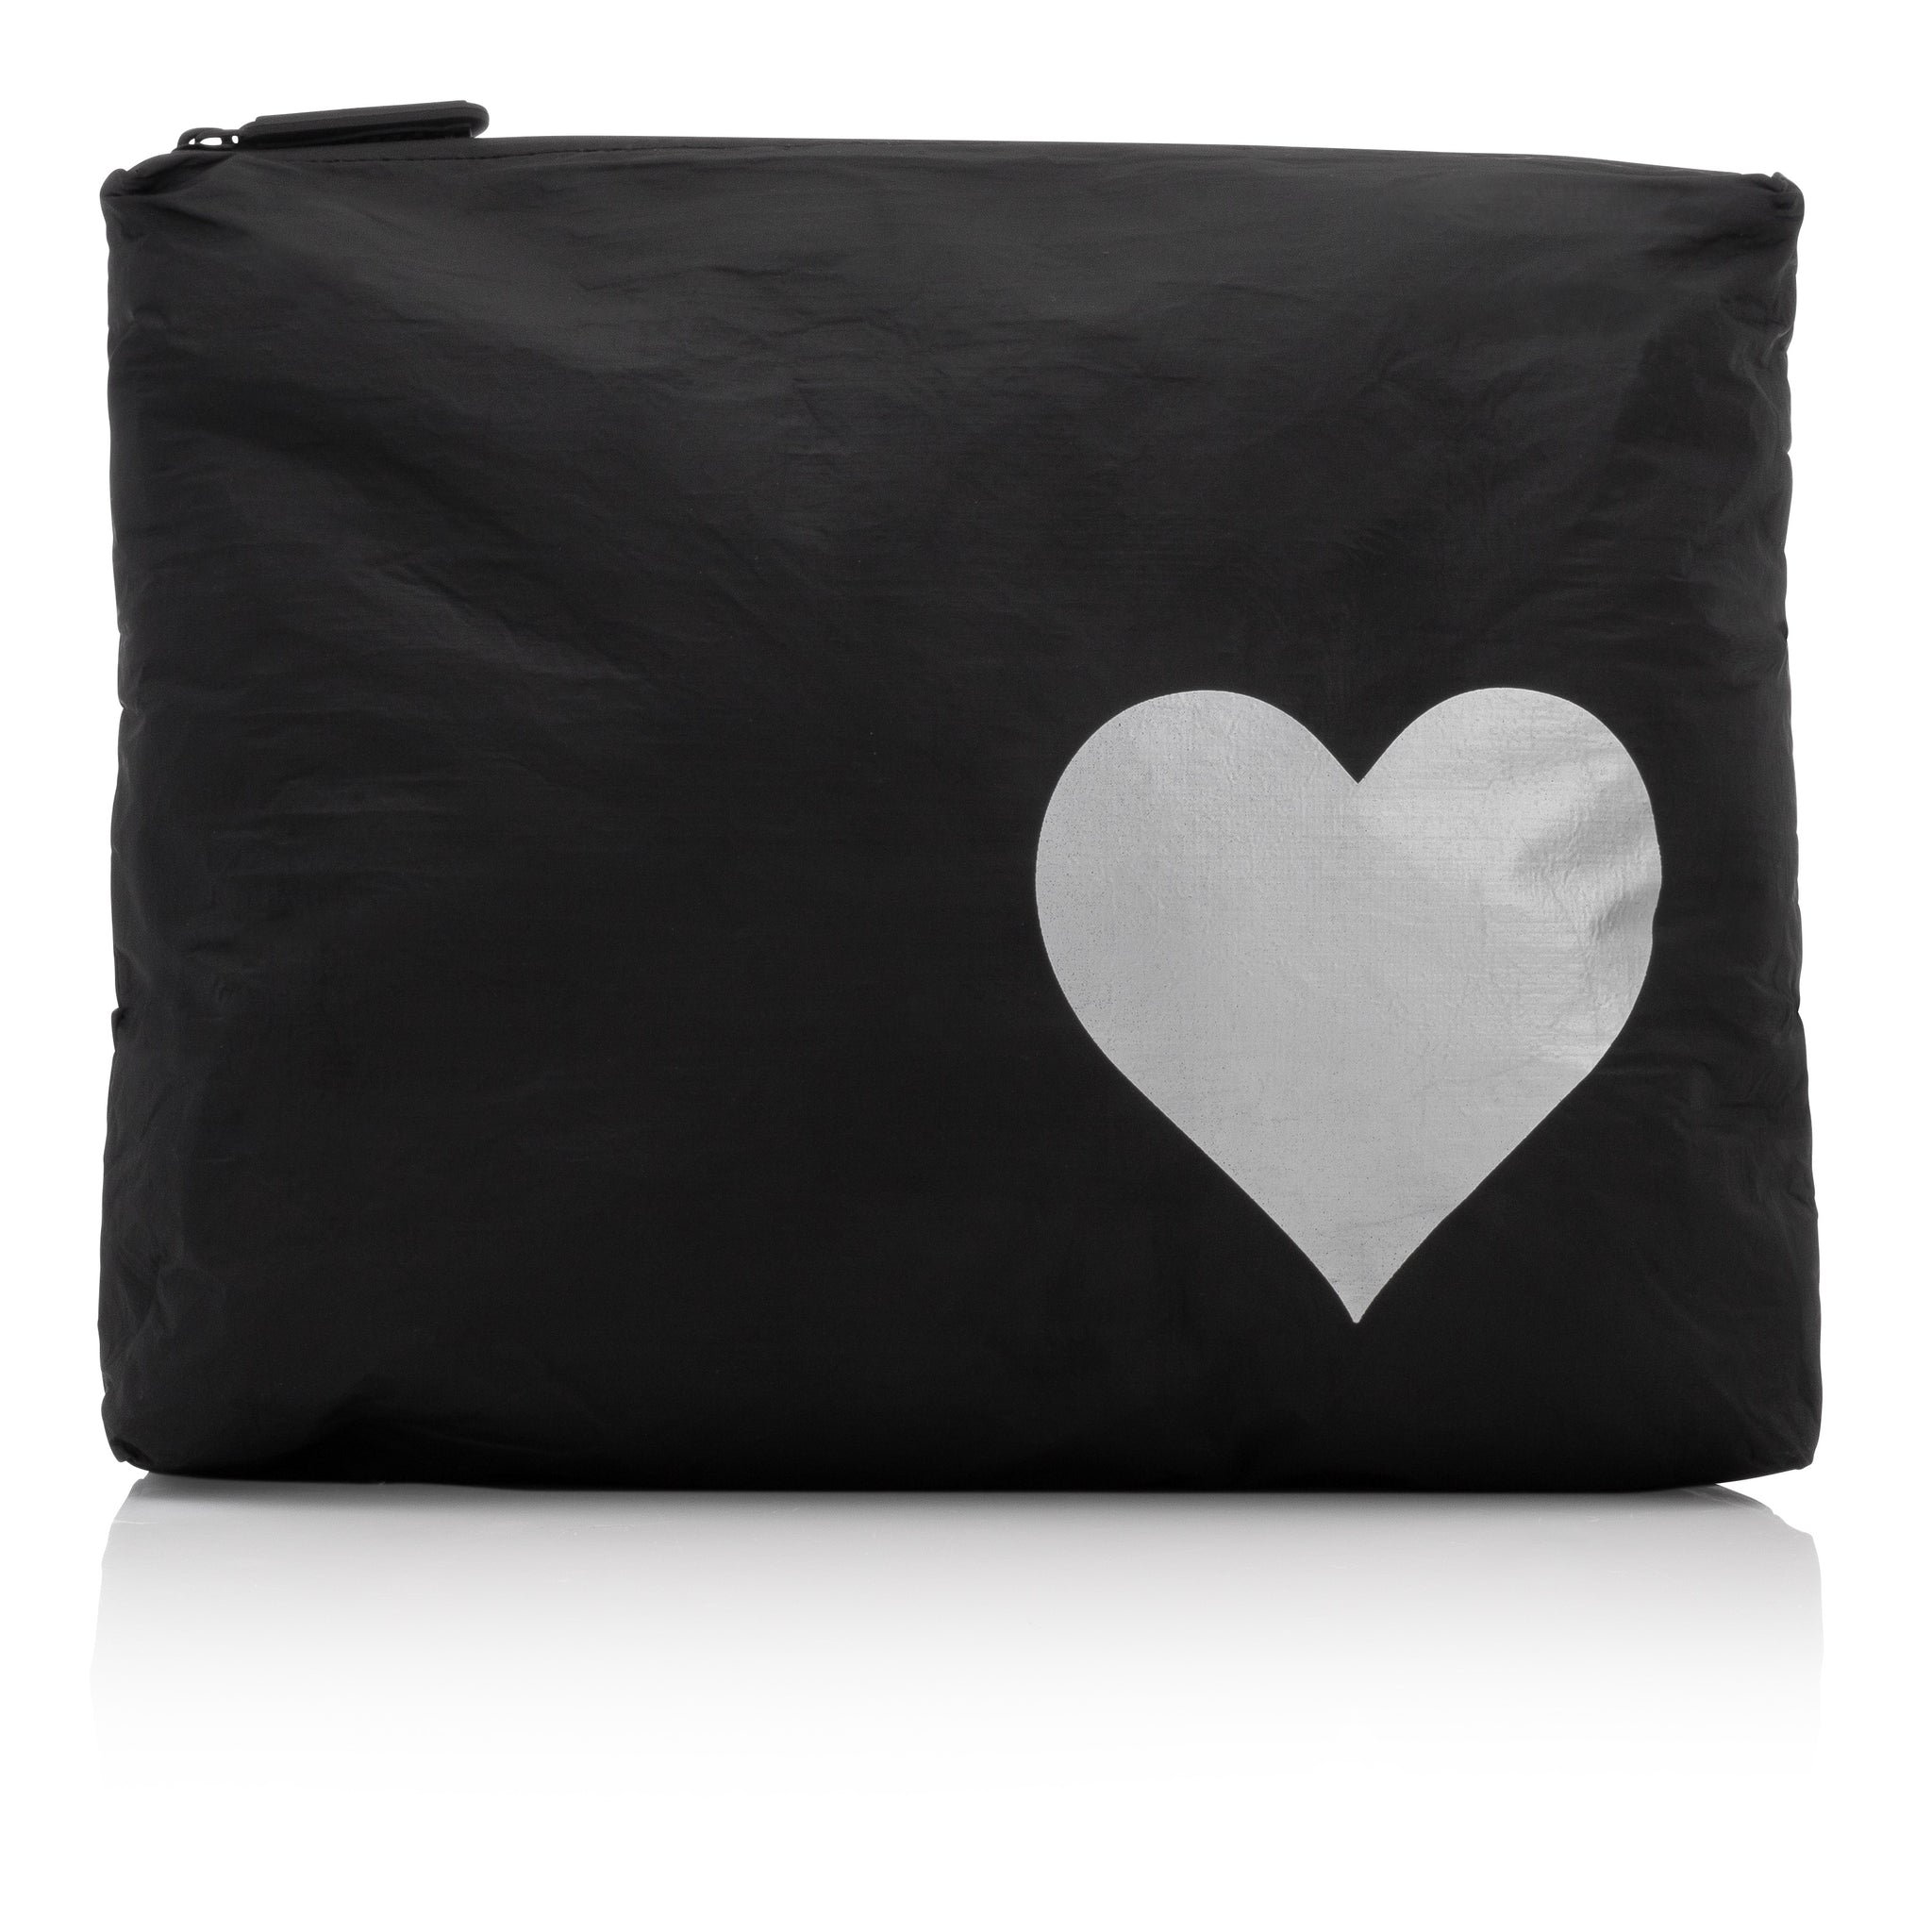 Makeup Pouch - Travel Pack - Medium Pack - Black with Metallic Silver Heart